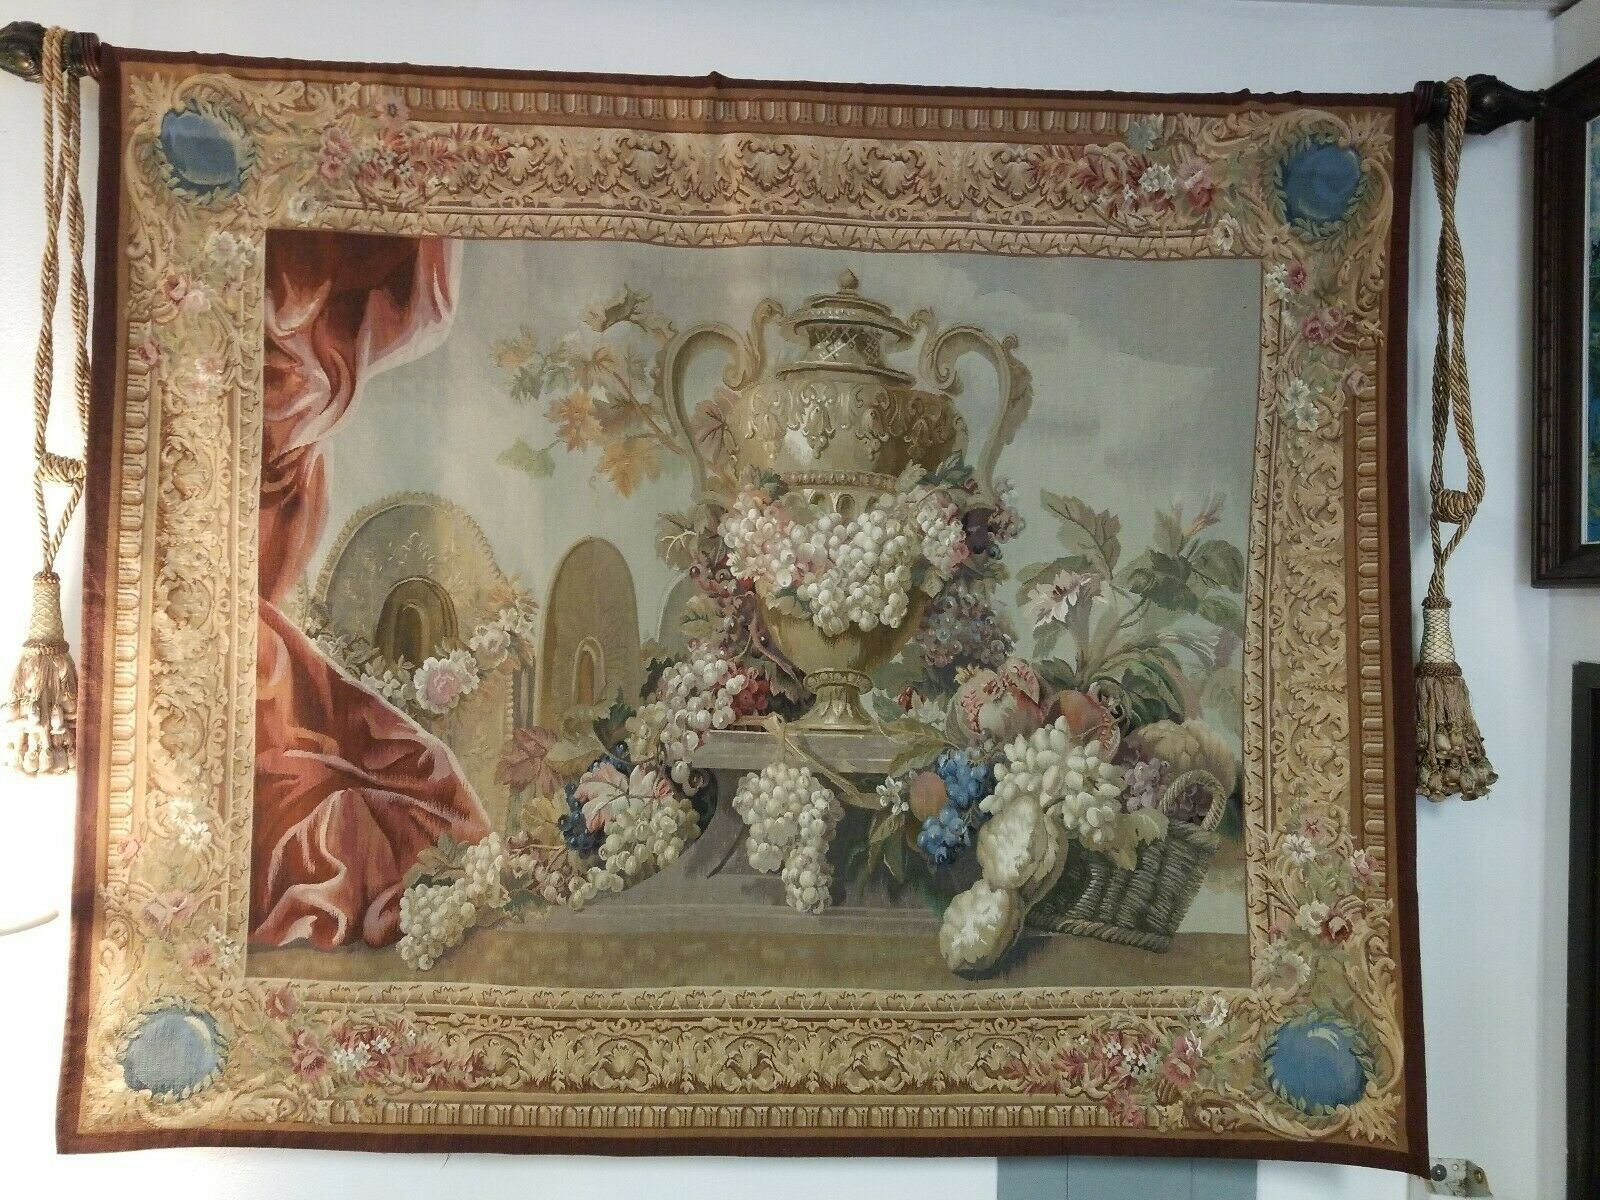 VINTAGE TAPESTRIES, LTD HIGH POINT, N. C. WALL HANGING 74  W x 59  H TAPESTRIES